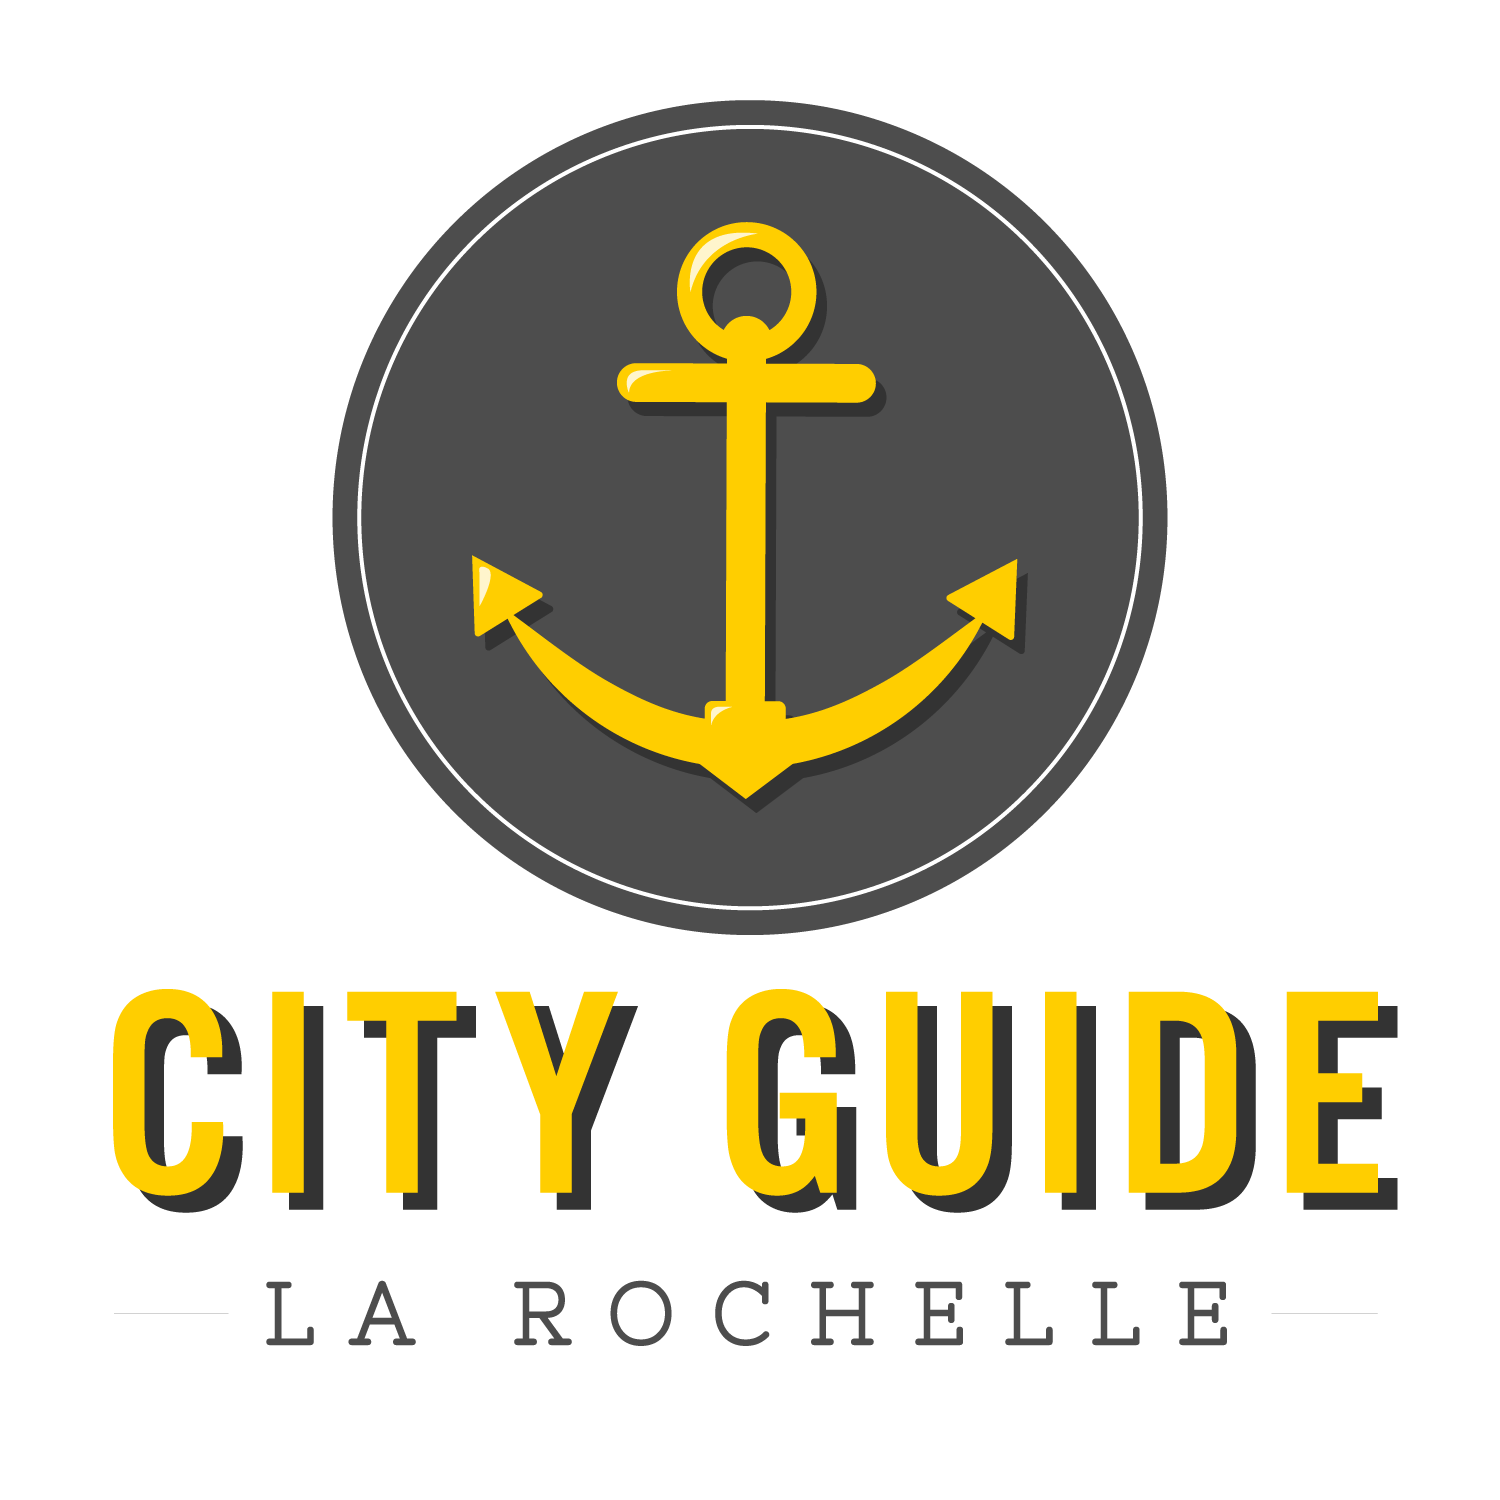 CITY GUIDE LA ROCHELLE